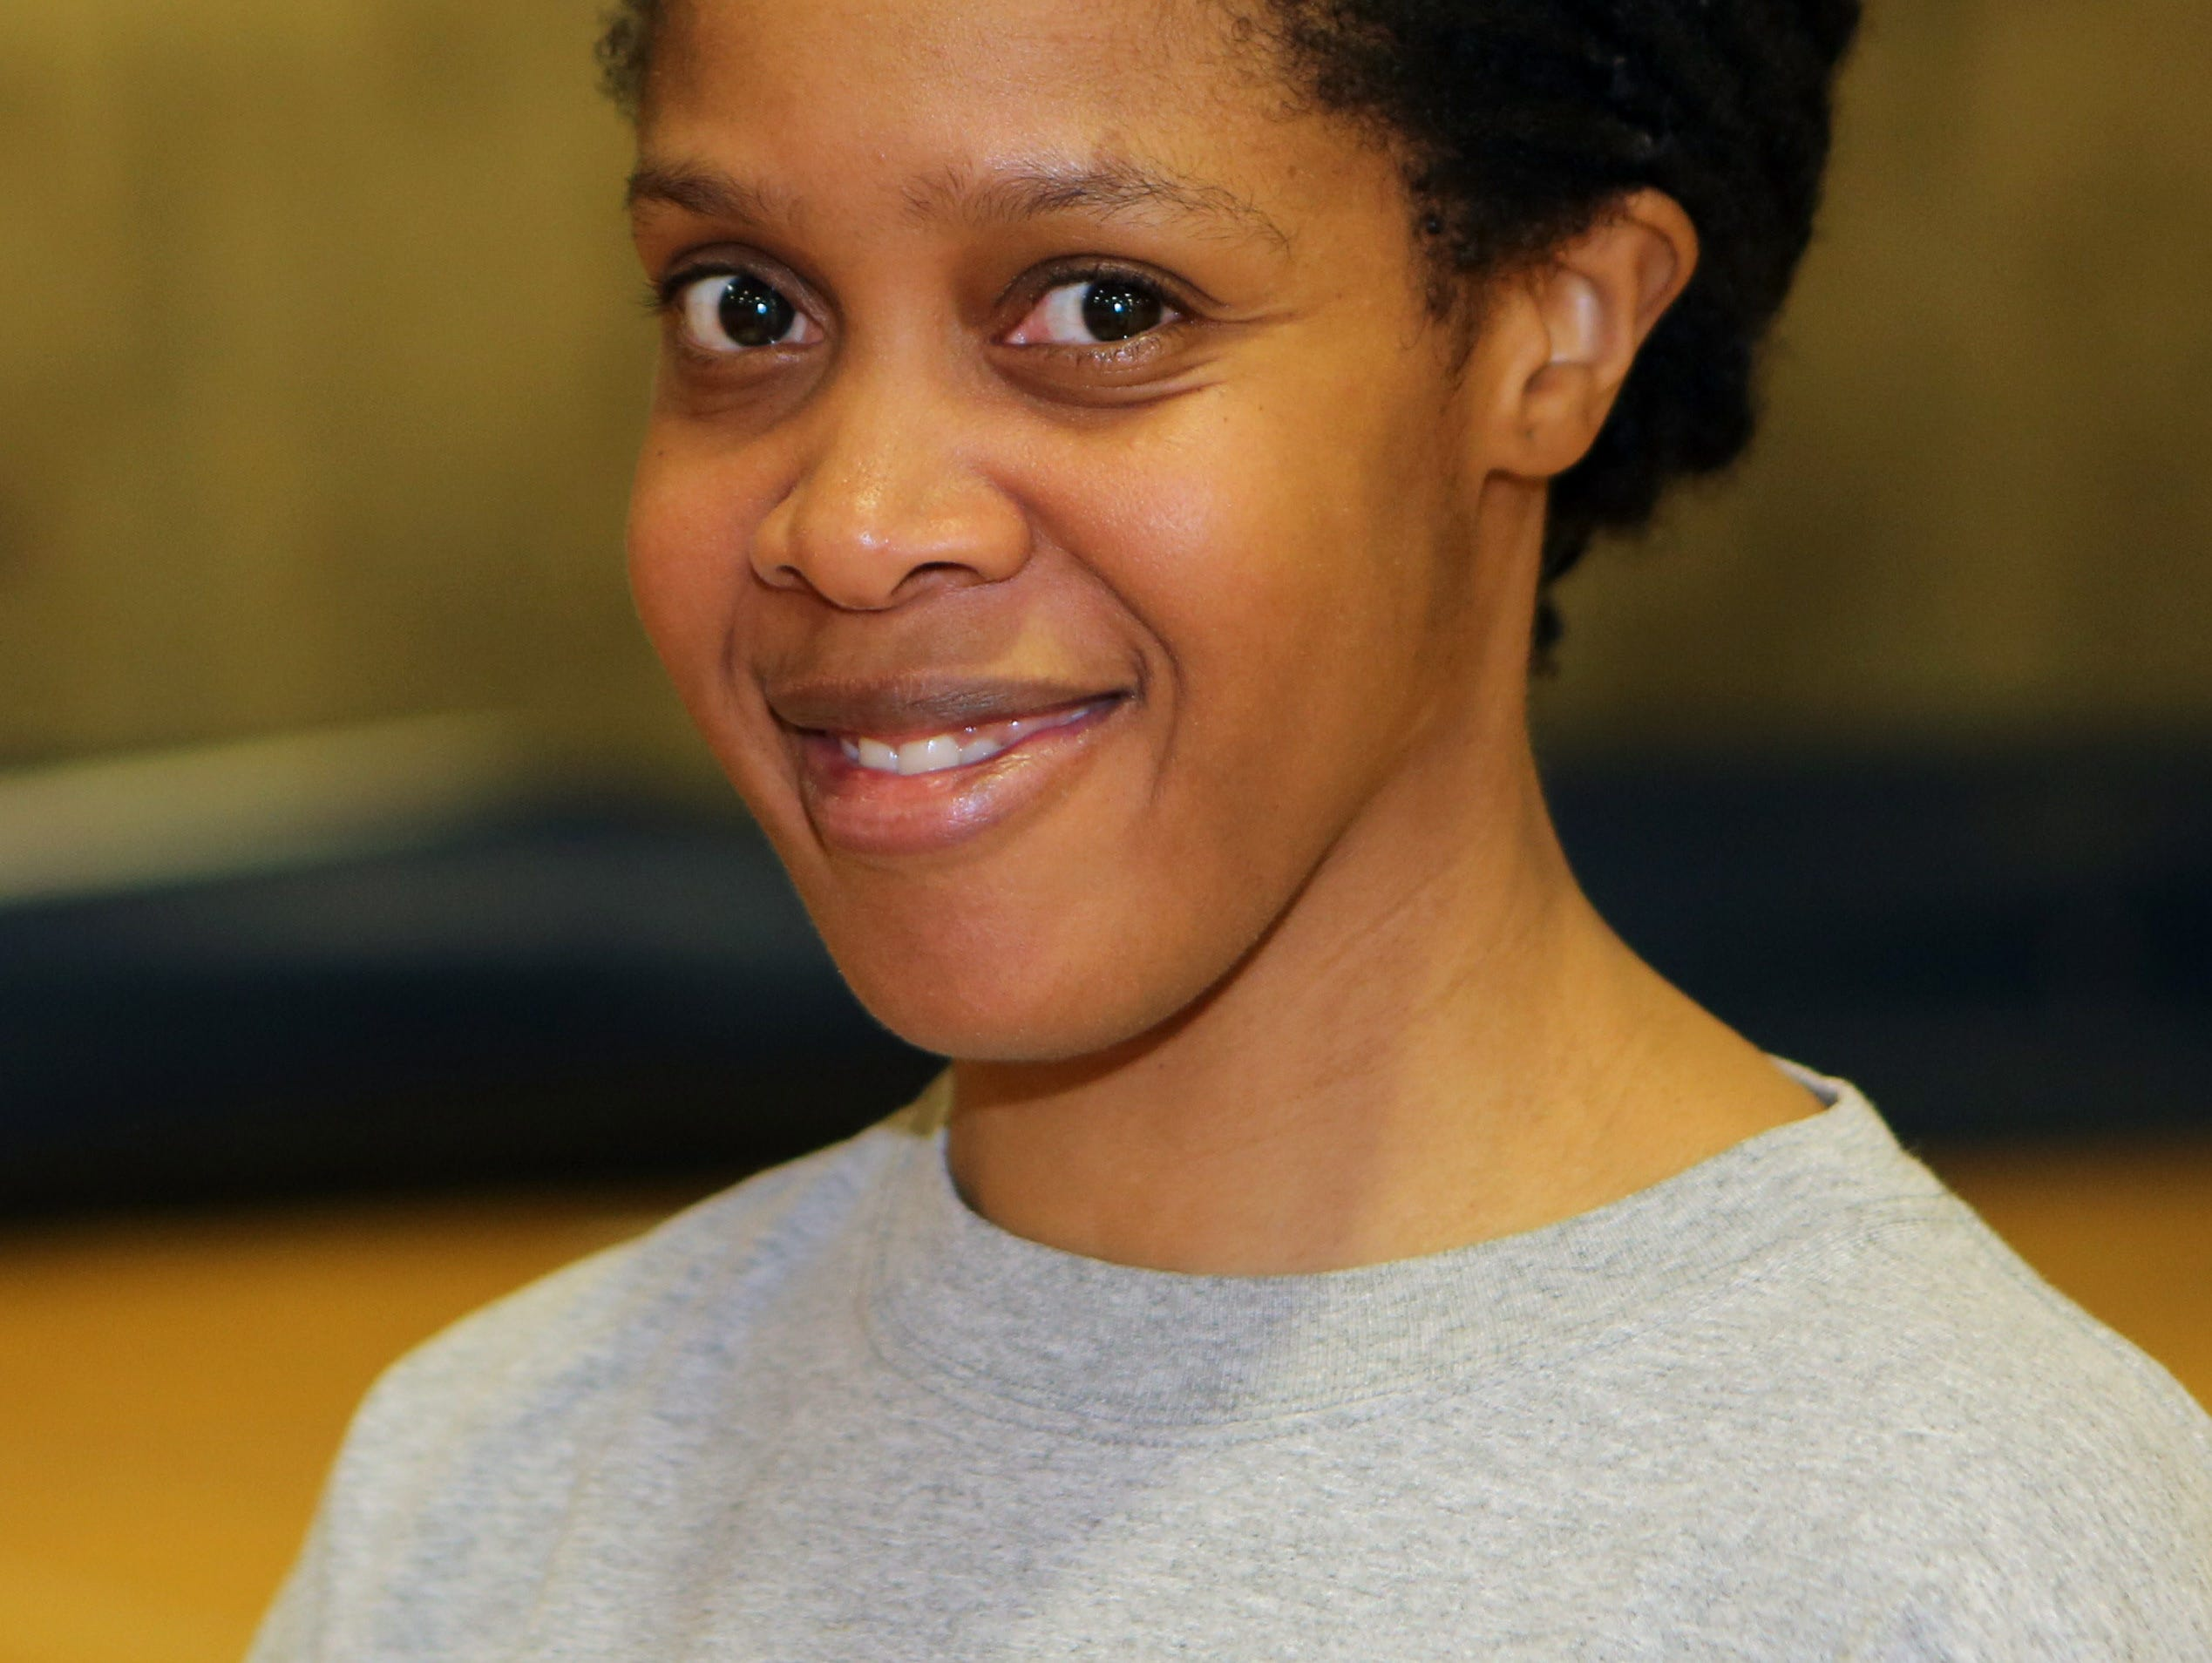 Alicia Murray, the volleyball coach at Yonkers Middle High School, Aug, 25, 2016. Murray was away from coaching for a while, but has now returned.